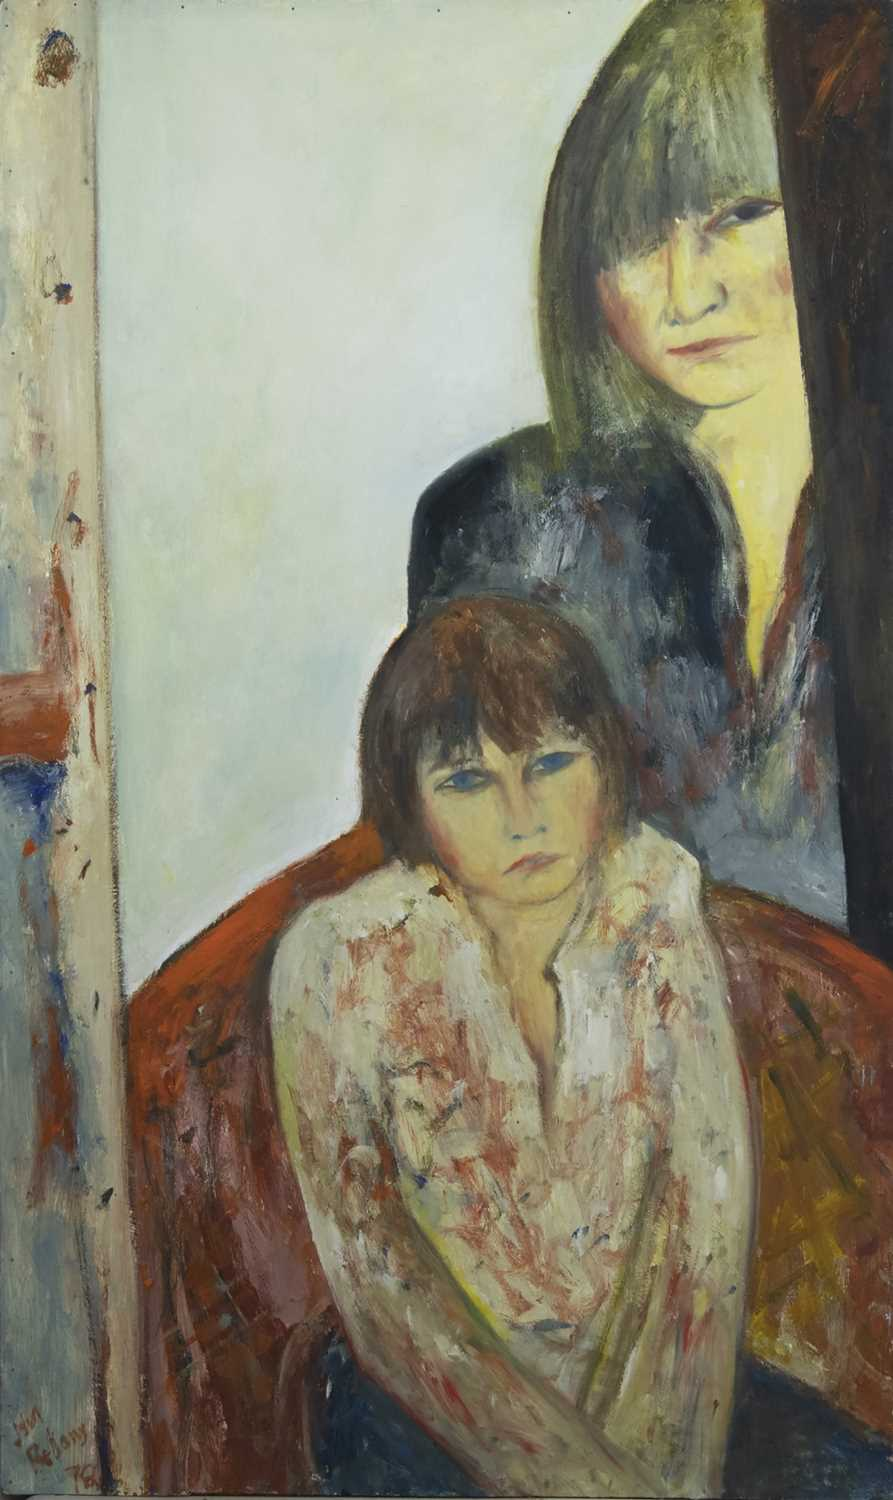 Lot 604 - THE PORTRAIT OF JULIET AND DAVID, A PORTRAIT BY JOHN BELLANY